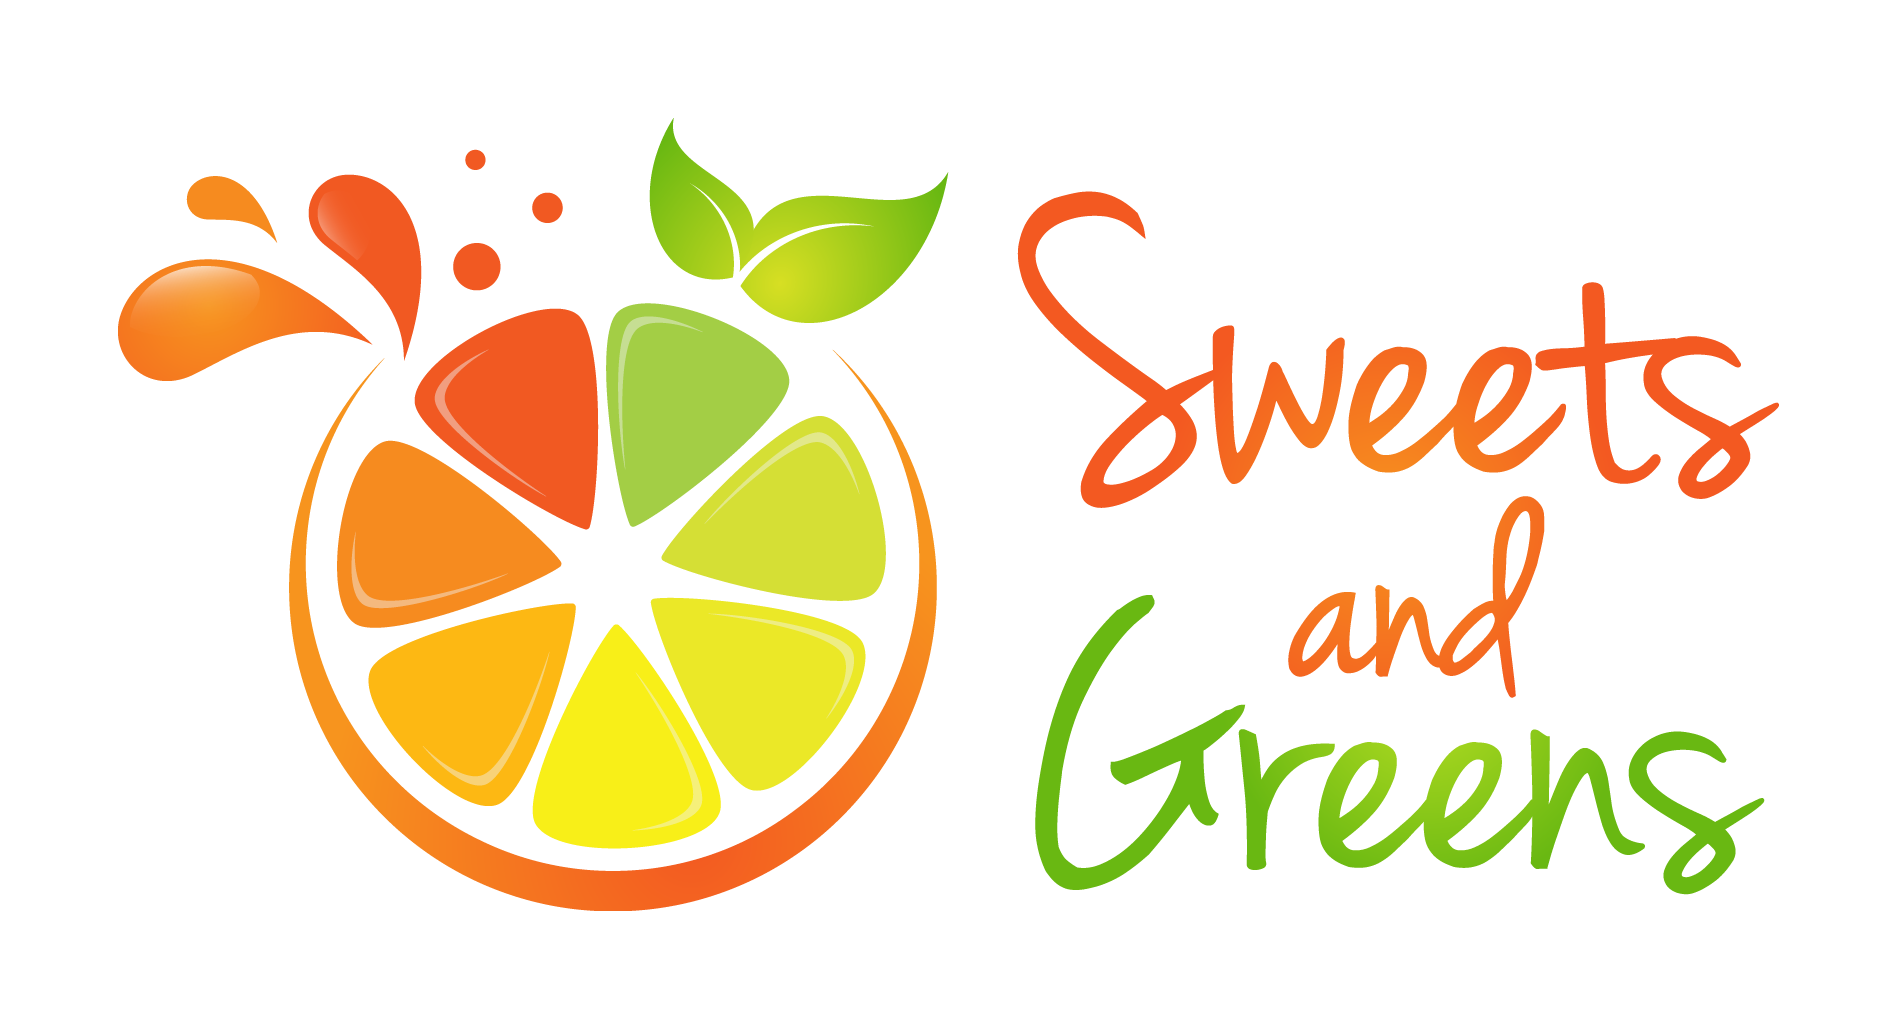 sweets and greens